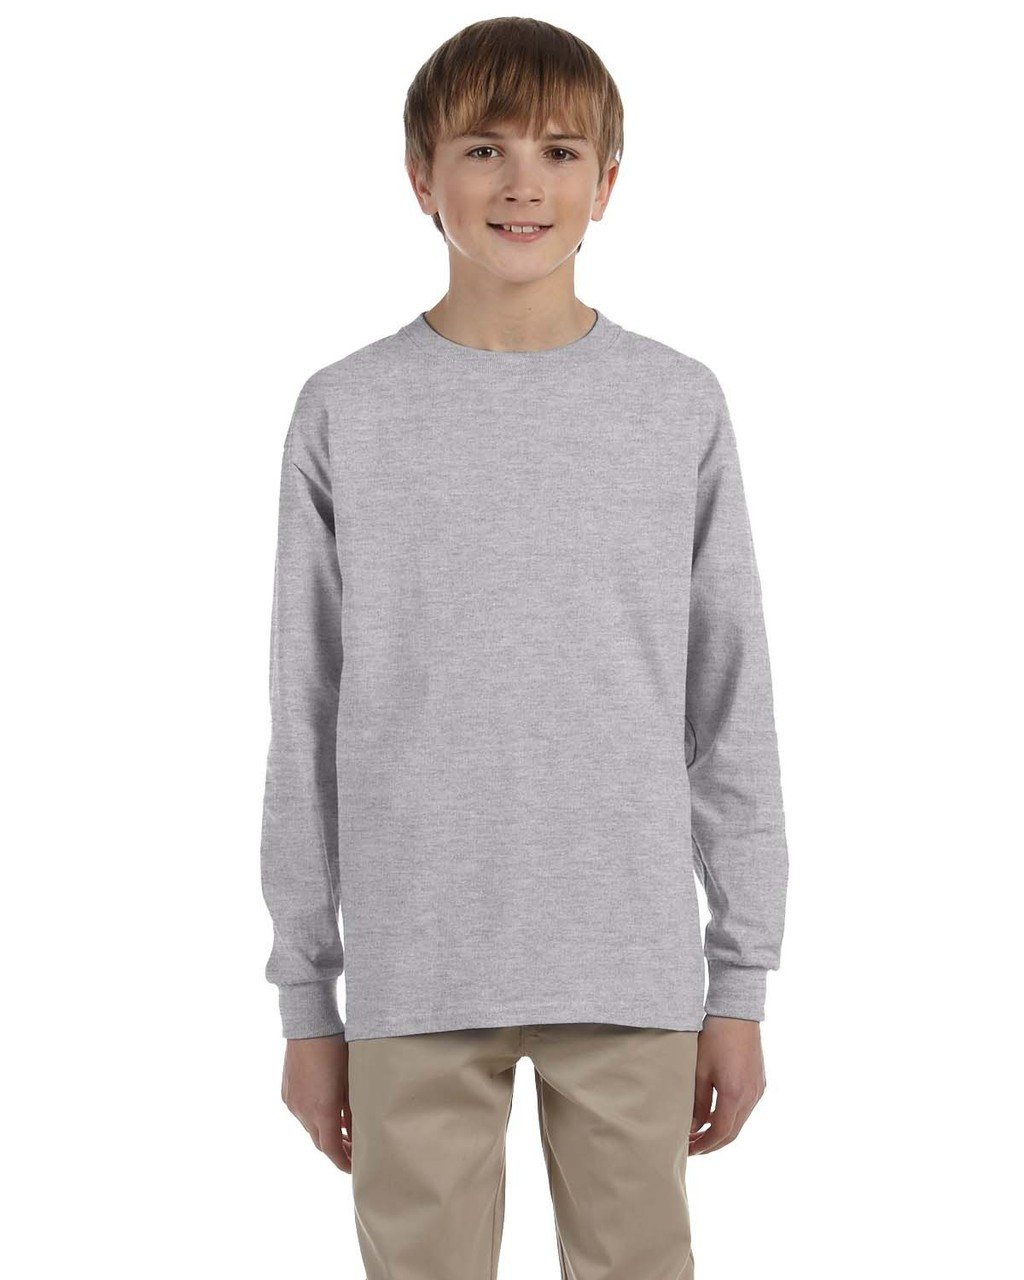 Sport Grey - G240B Ultra Cotton Youth Long Sleeve T-Shirt | Blankclothing.ca